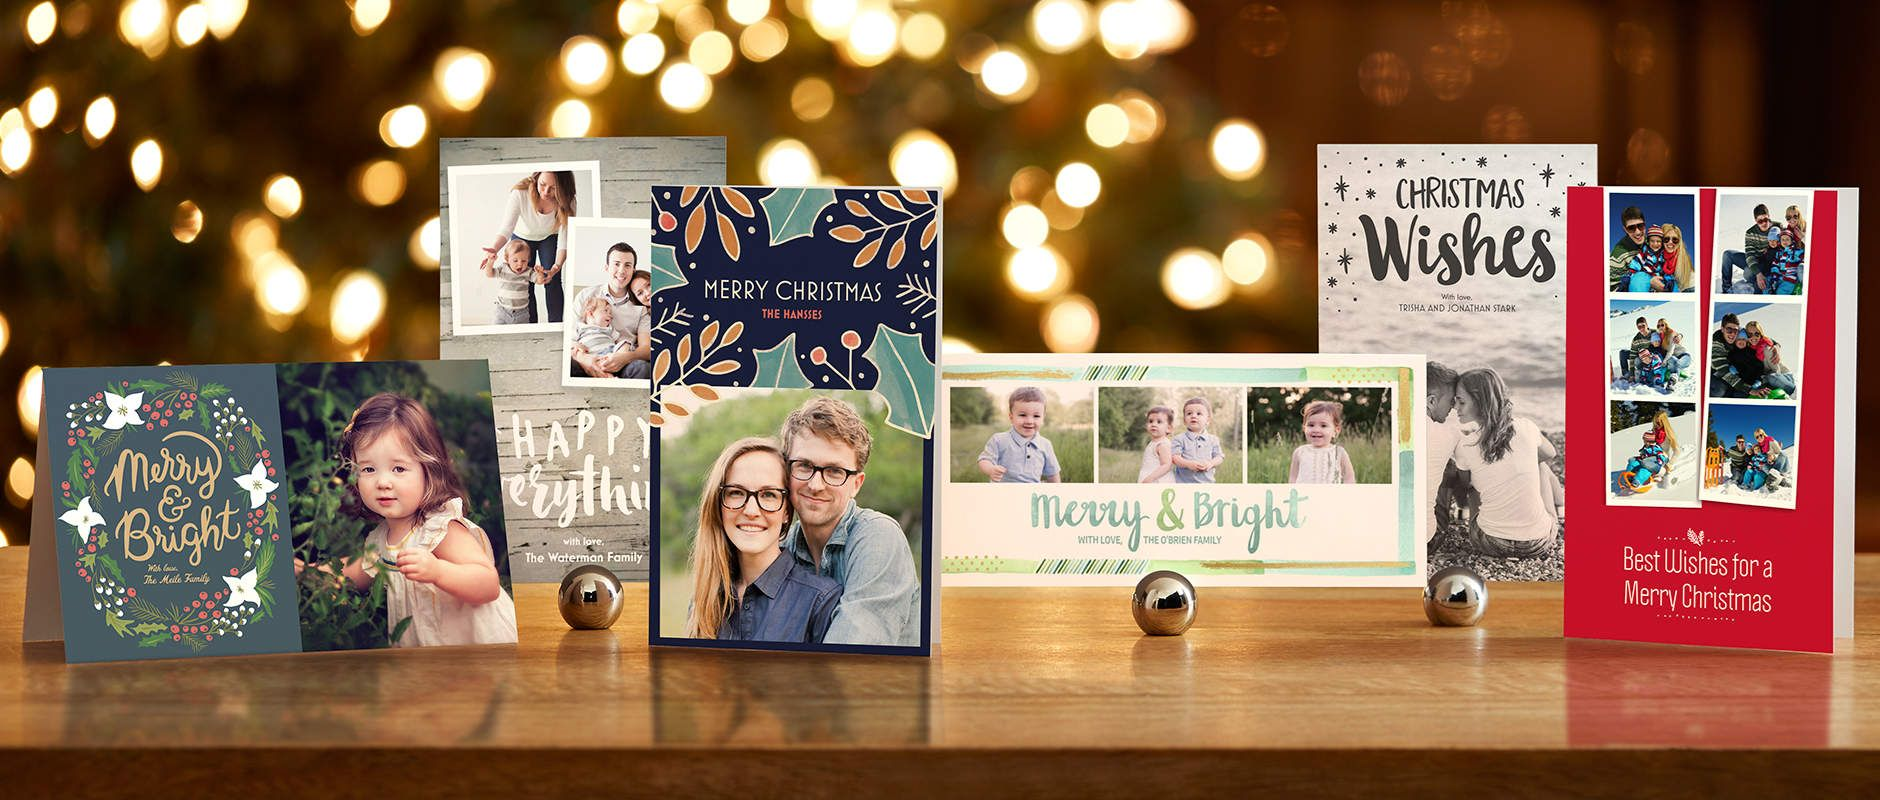 How To Pick The Best Photos For Your Christmas Cards Best Merry